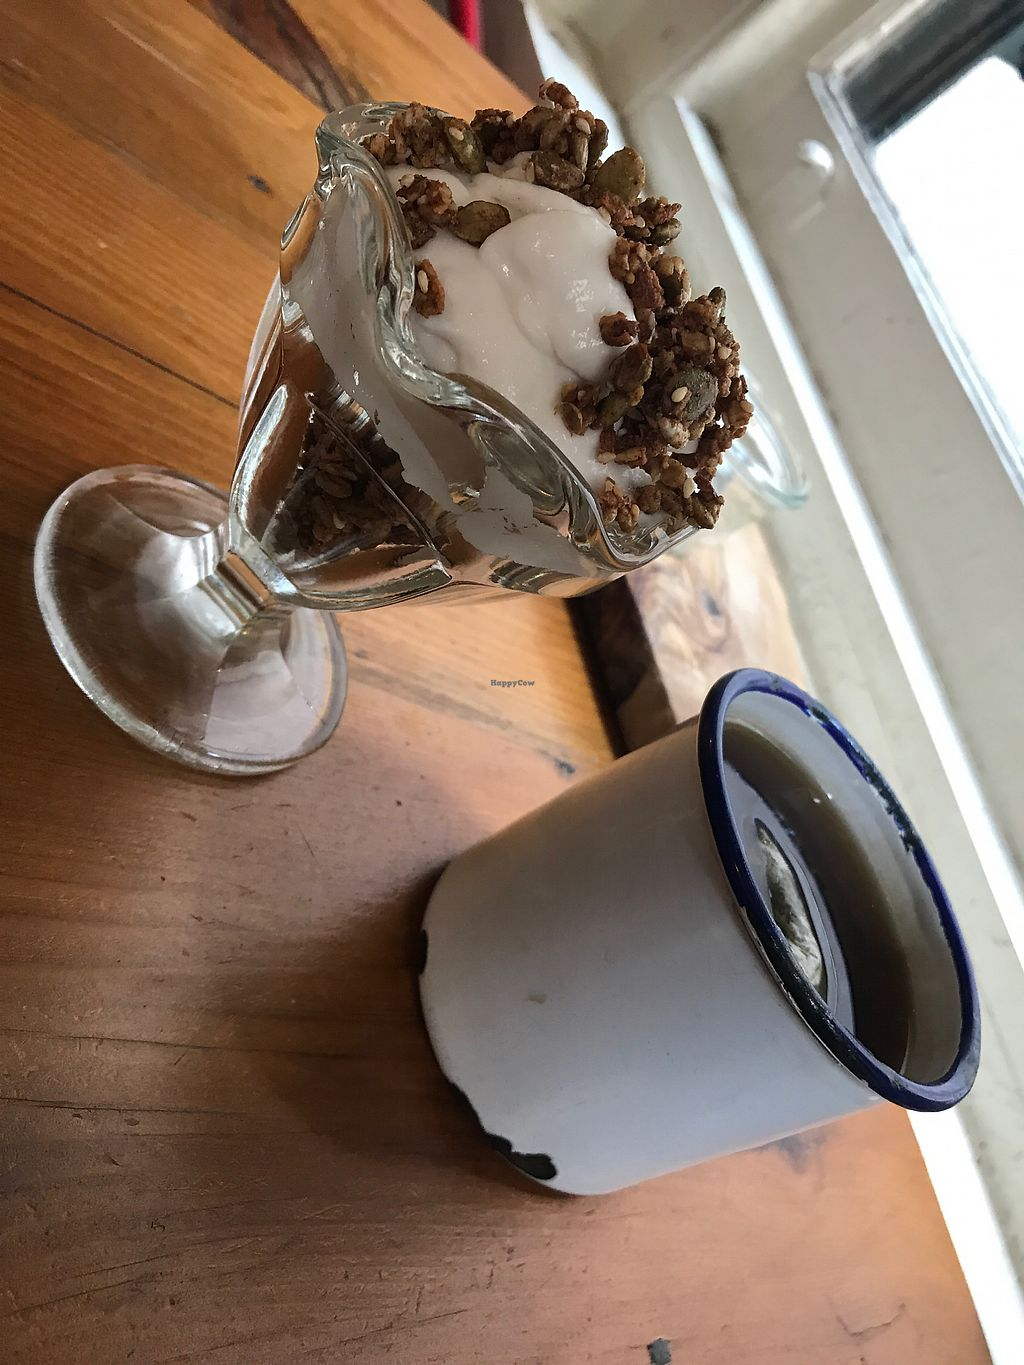 """Photo of P.S. and Co.  by <a href=""""/members/profile/urbinedwin"""">urbinedwin</a> <br/>coconut yogurt and orange blossom tea <br/> August 25, 2017  - <a href='/contact/abuse/image/47767/297052'>Report</a>"""